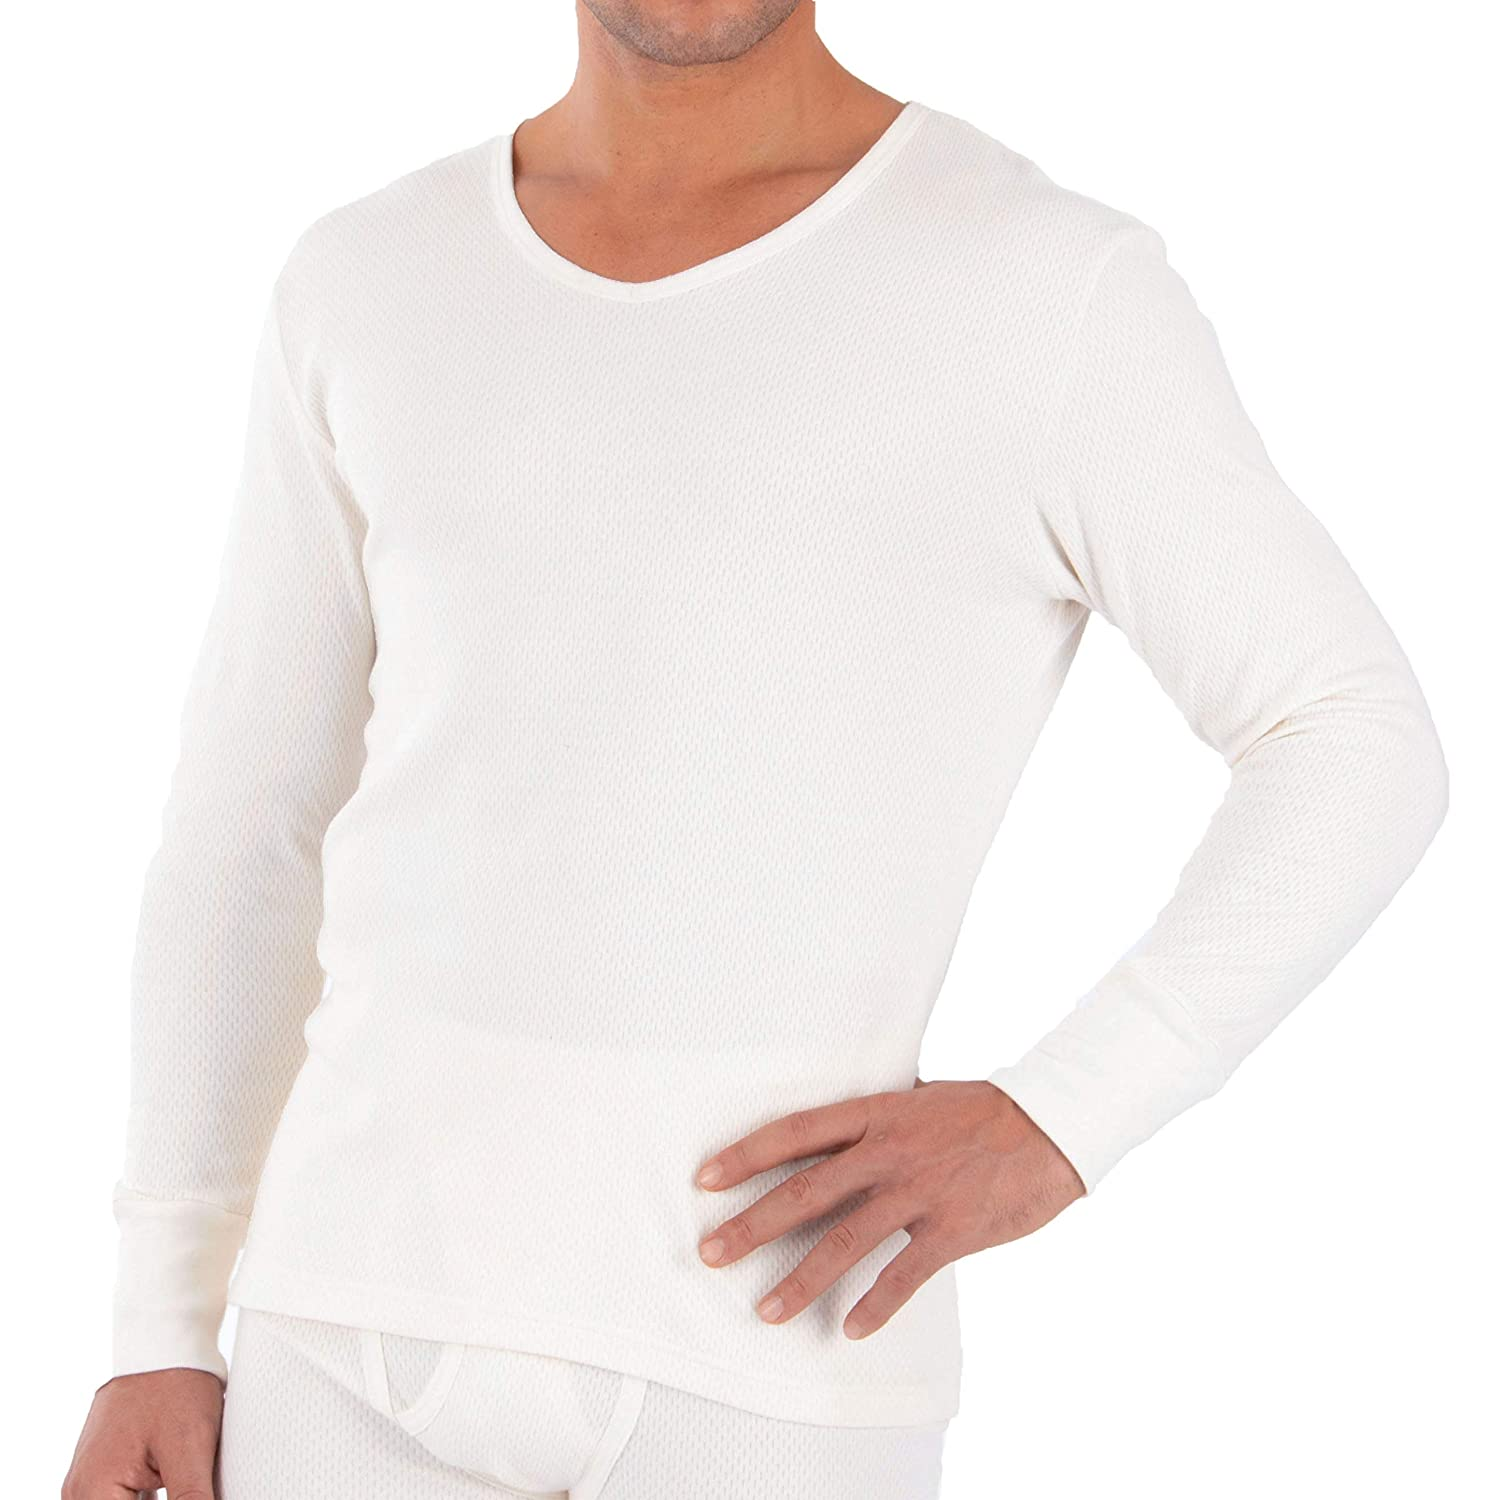 Cottonique Hypoallergenic Mens Thermal Long Sleeve